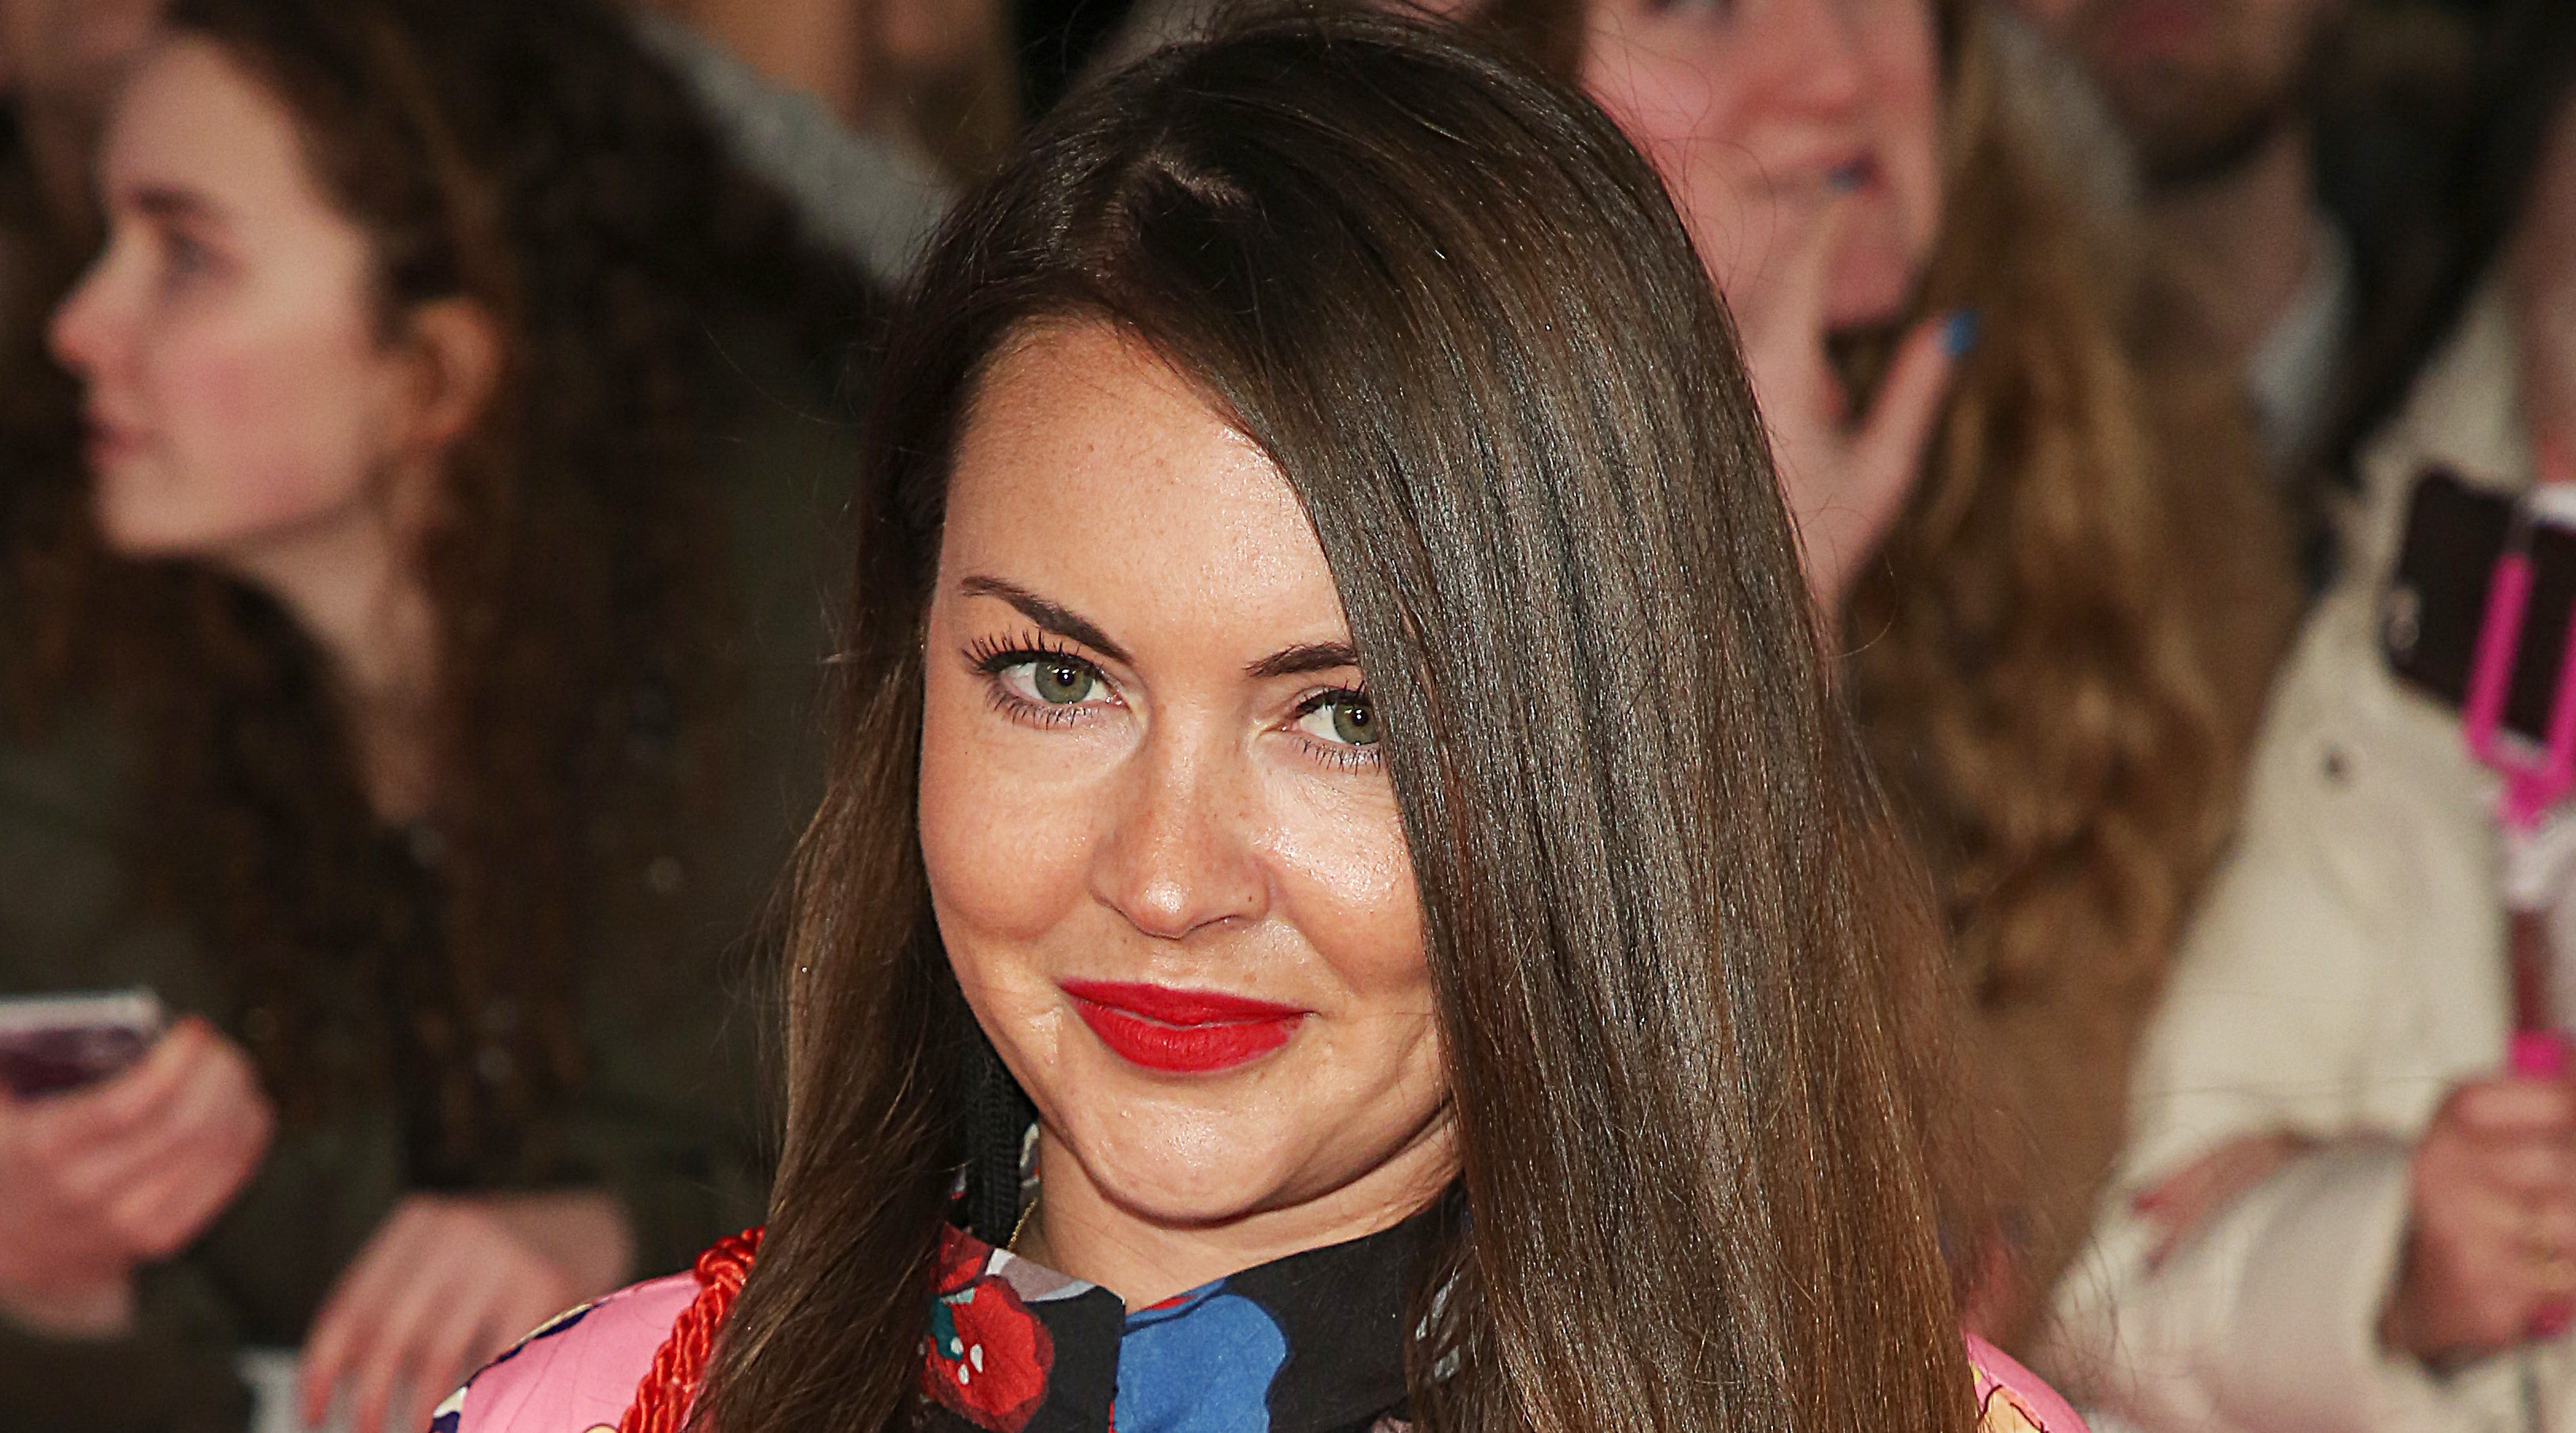 EastEnders Lacey Turner melts fans' hearts with new super-cute snap of daughter Dusty